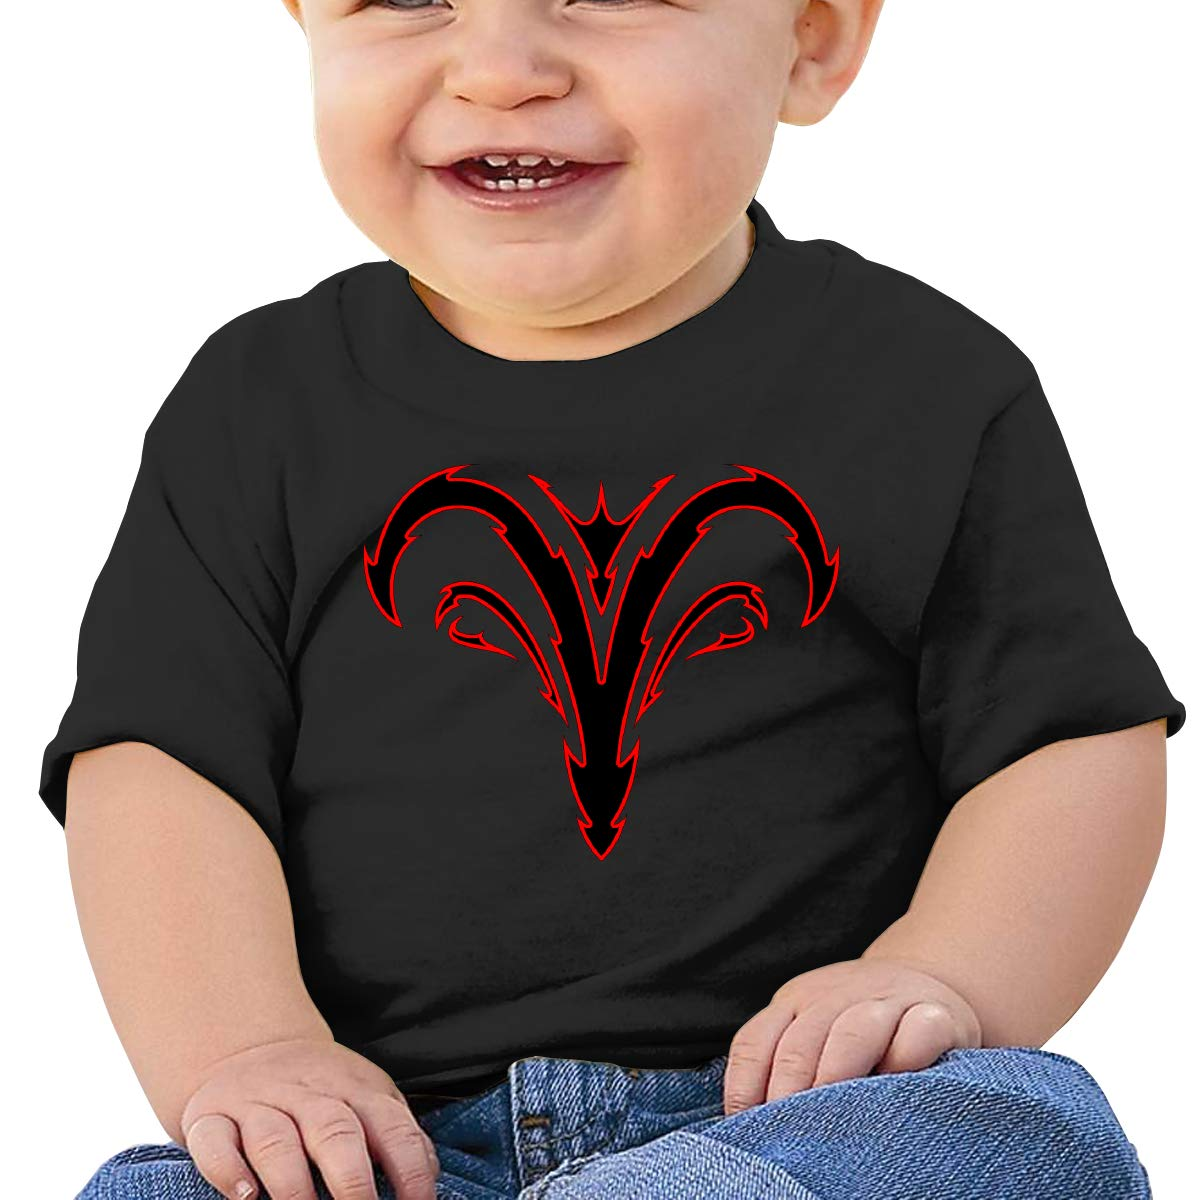 JVNSS Red and Black Tribal Aries Baby T-Shirt Kids Cotton T Shirts Crew Neck Clothes for 6M-2T Baby